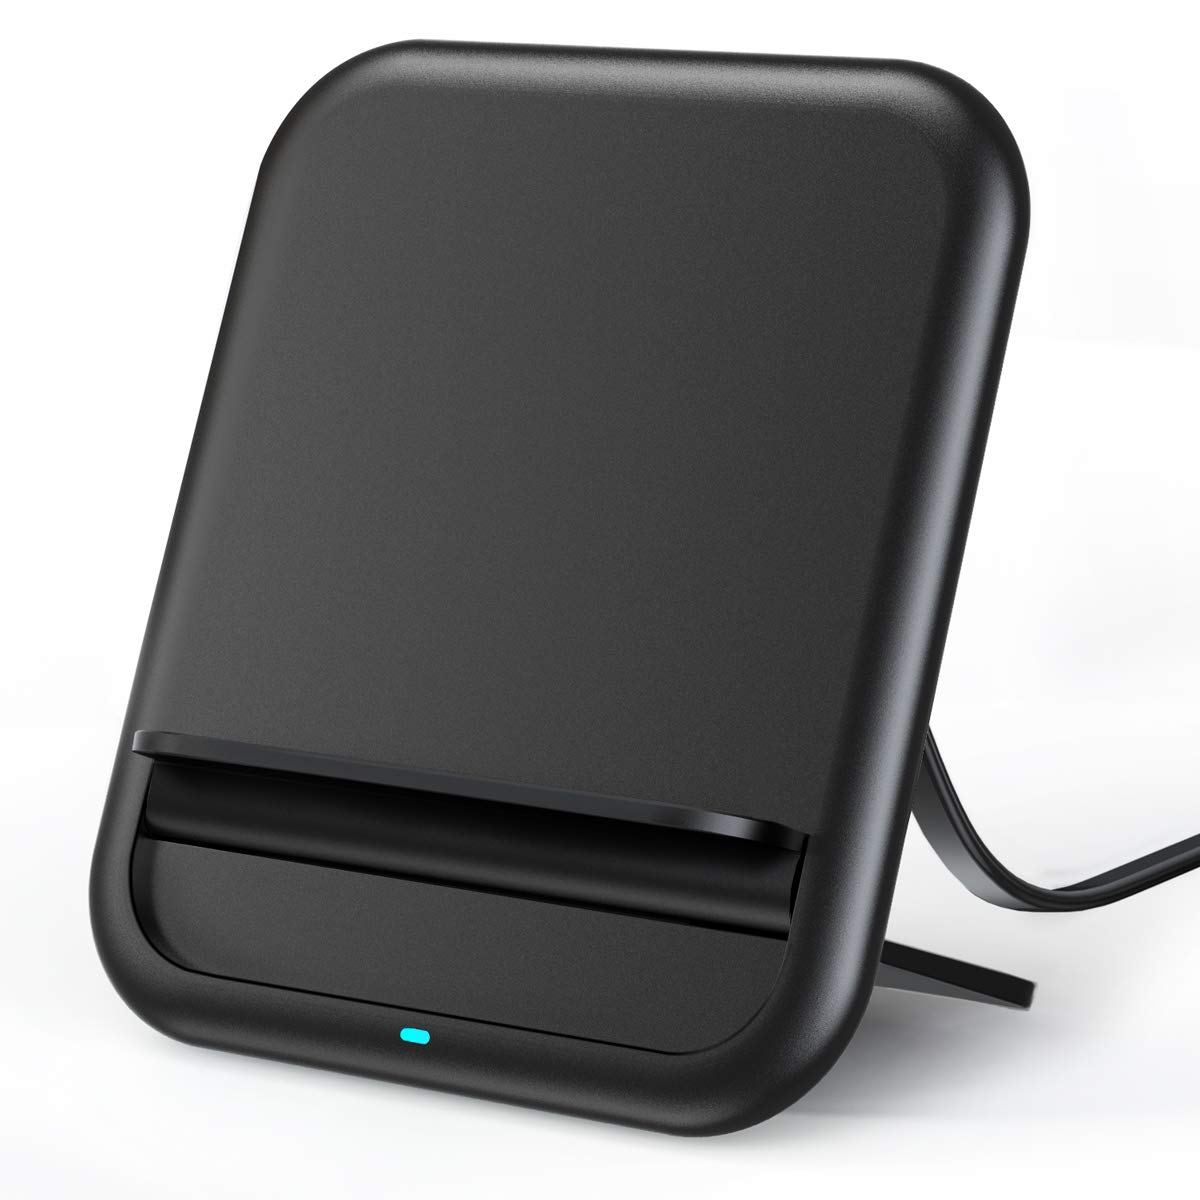 DesertWest Wireless Charger